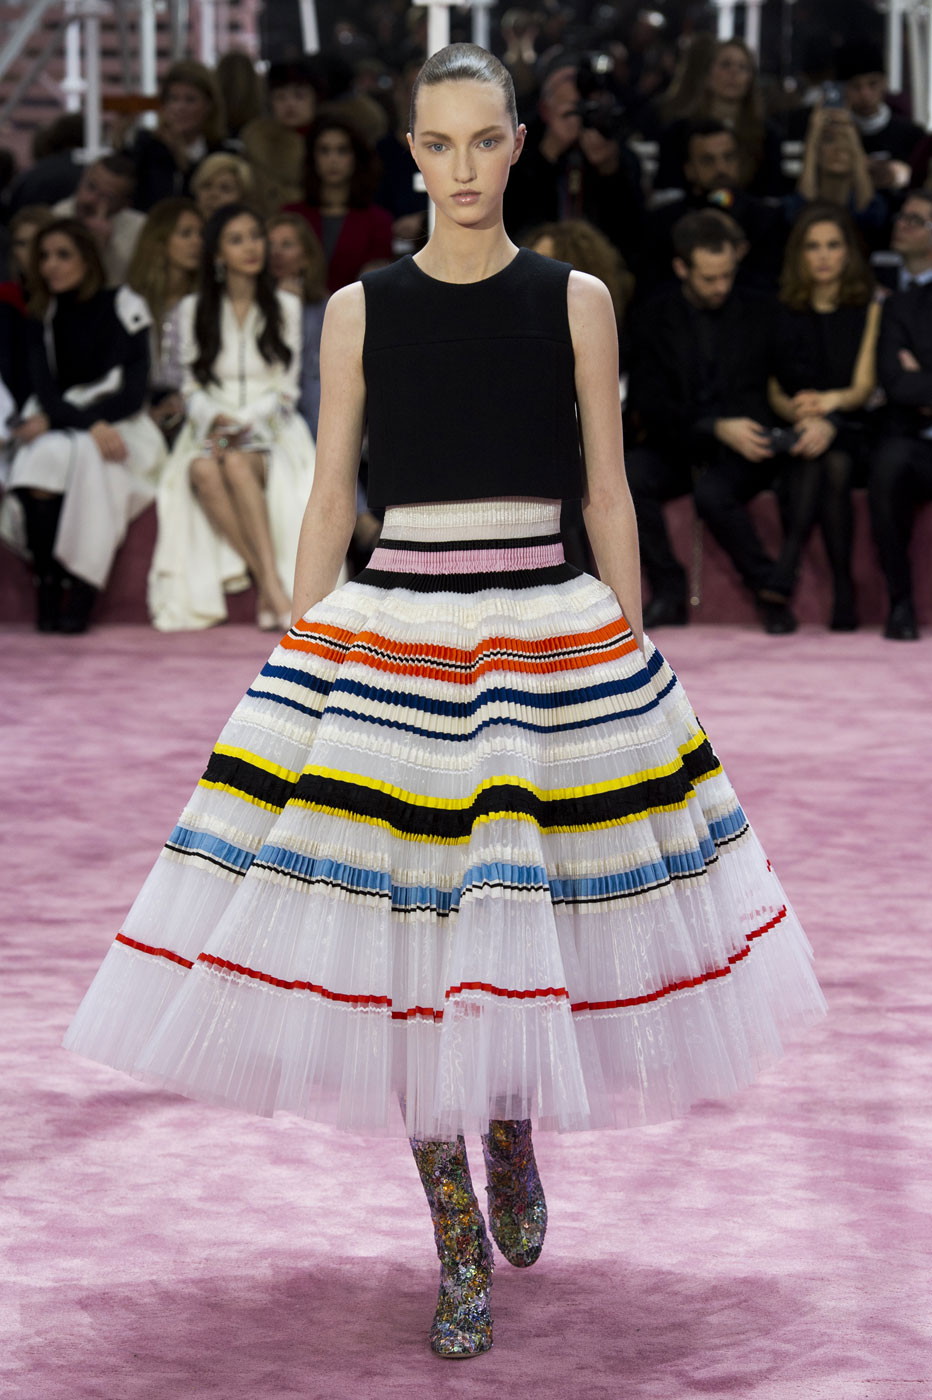 Christian-Dior-fashion-runway-show-haute-couture-paris-spring-summer-2015-the-impression-110